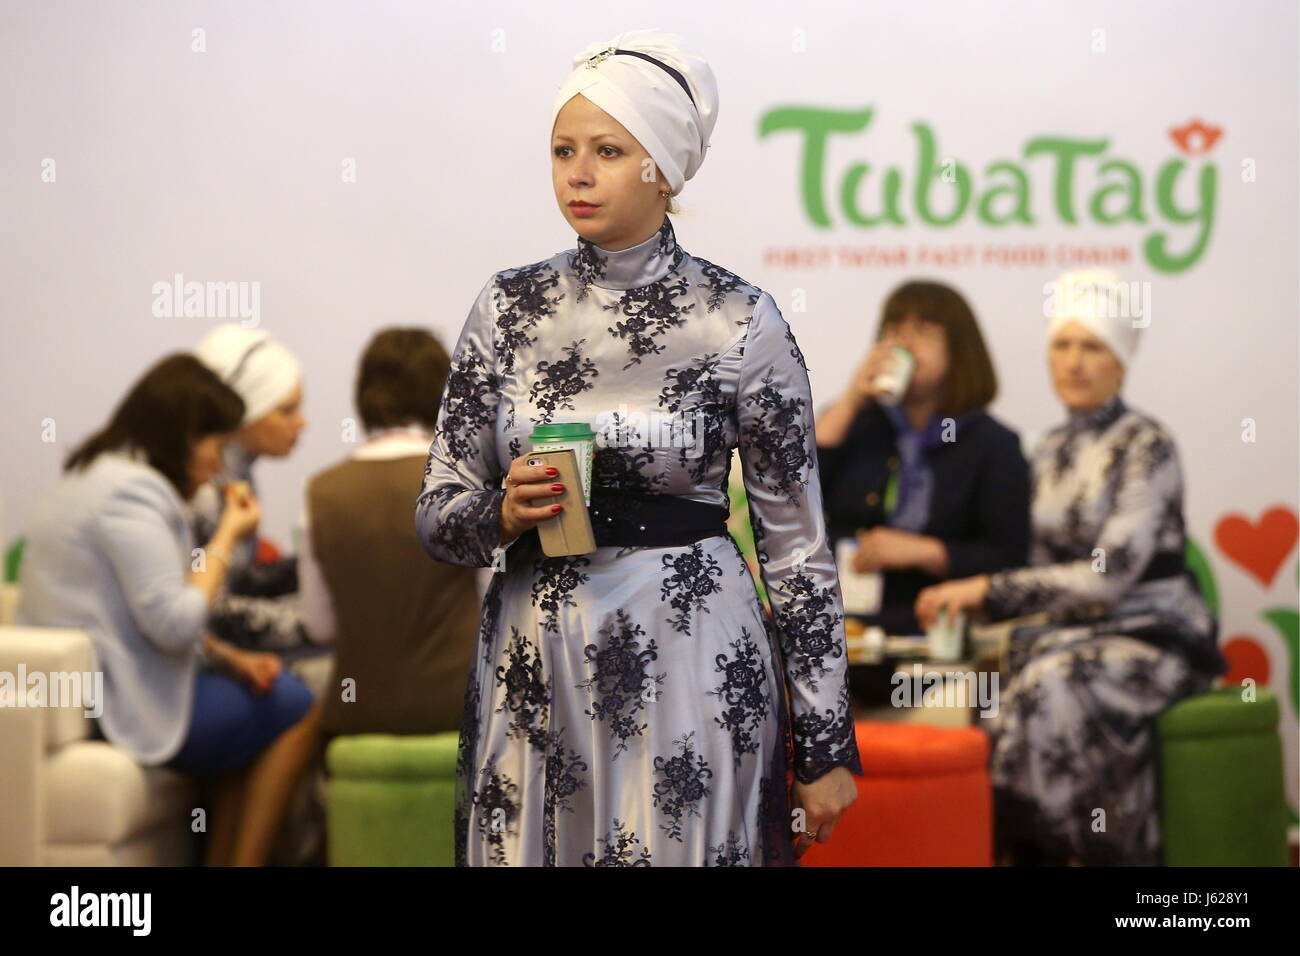 """Kazan, Russia. 19th May, 2017. A participant in the 9th International Economic Summit titled """"Russia — Islamic World: - Stock Image"""